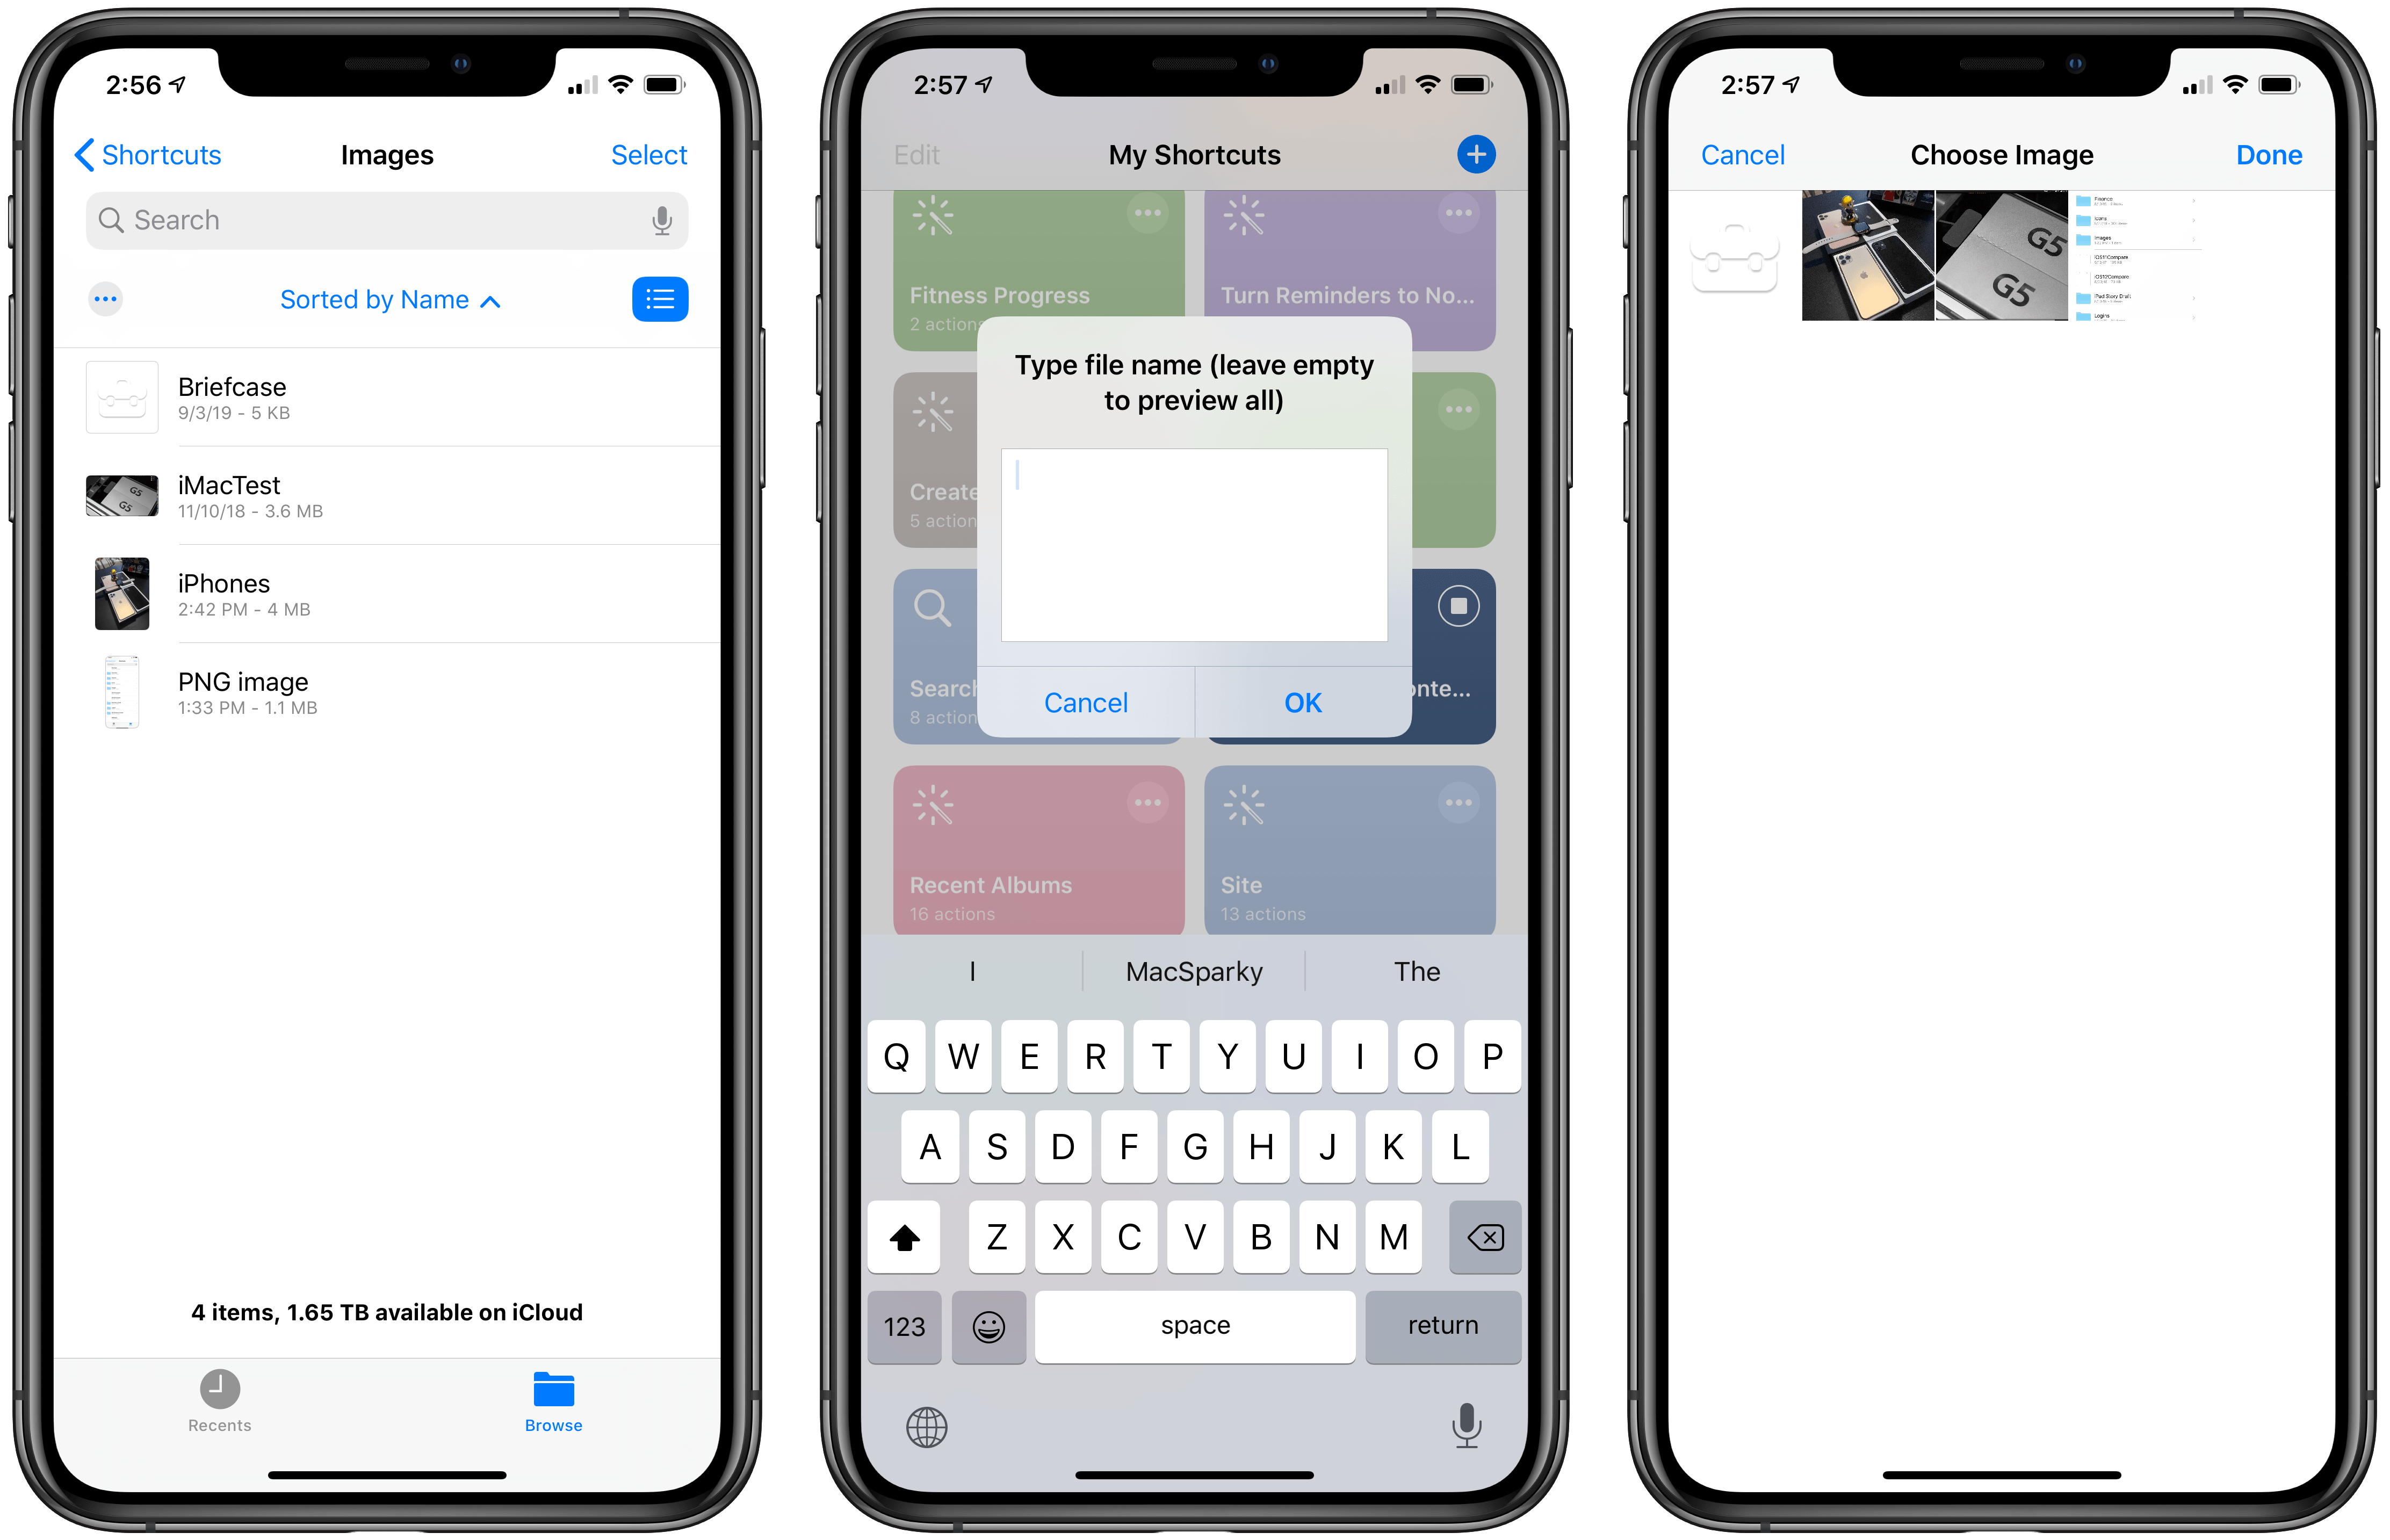 All the contents of a folder (left) can be previewed inside the Shortcuts app.